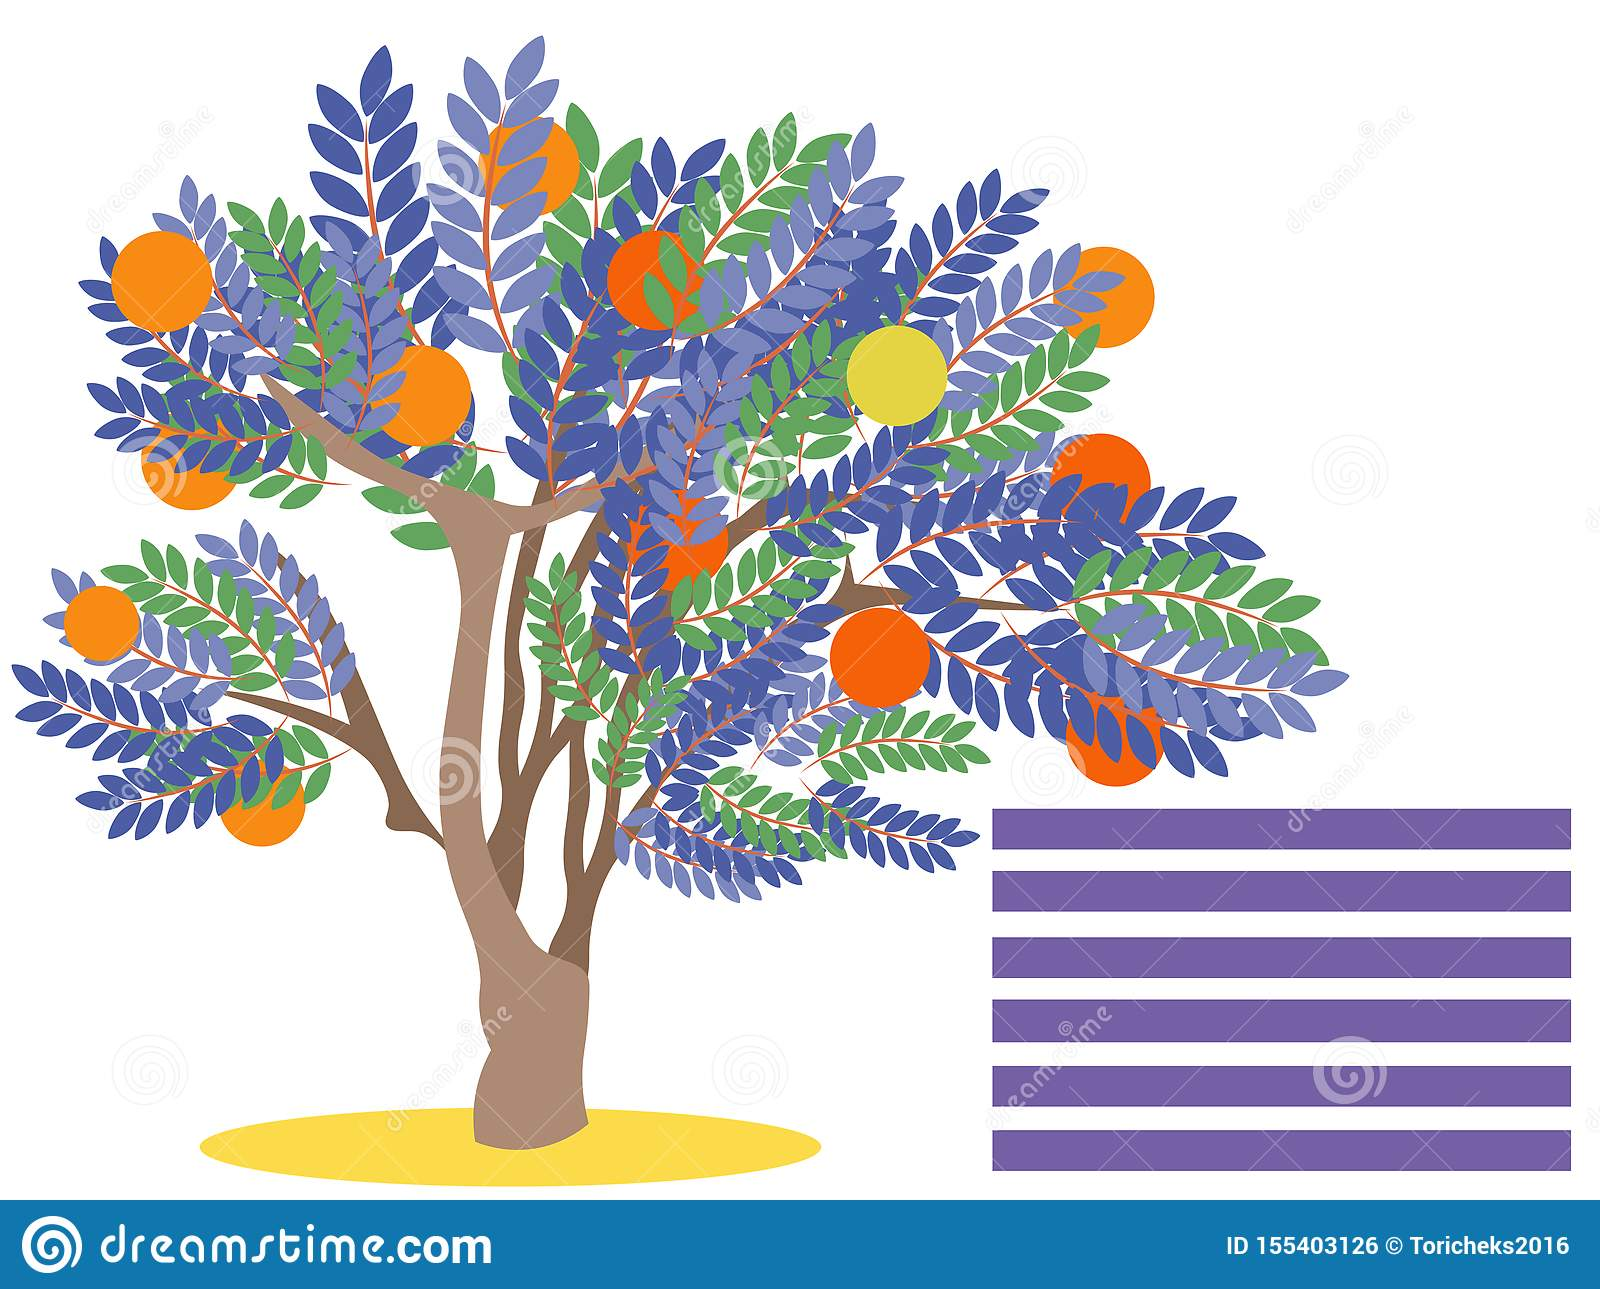 Orange tree with fruit. Blank for banner. In minimalist style. Flat isometric raster